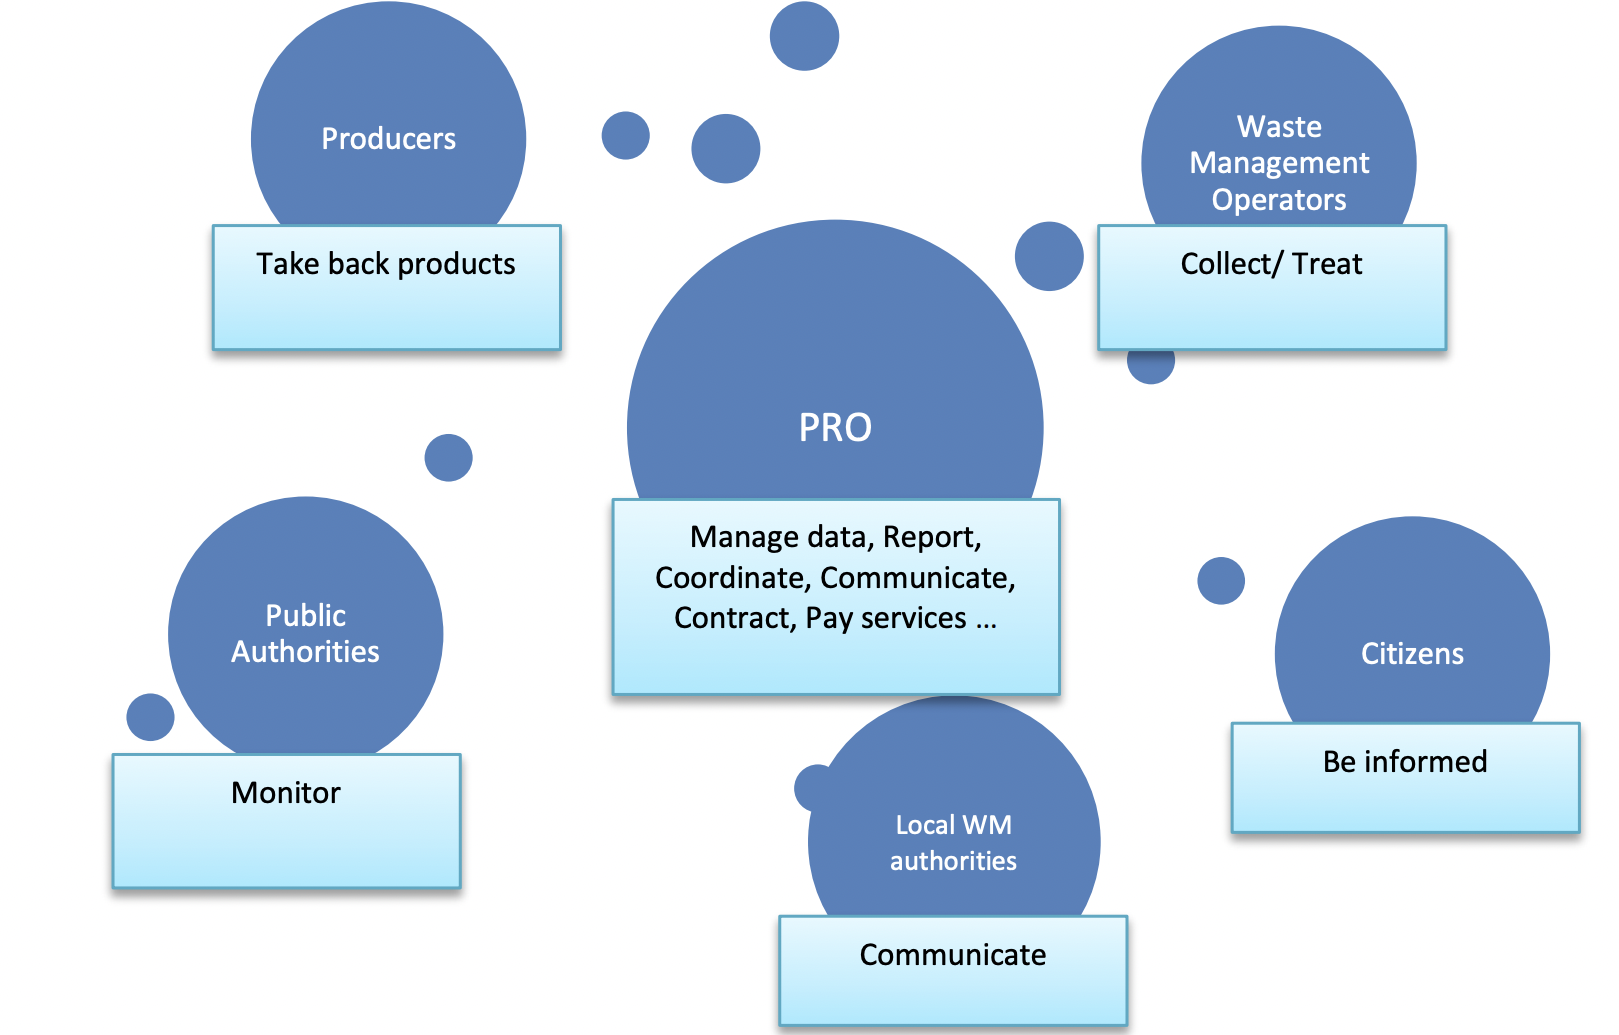 Stakeholders in the EPR Implementation system and the role of PROs in the process